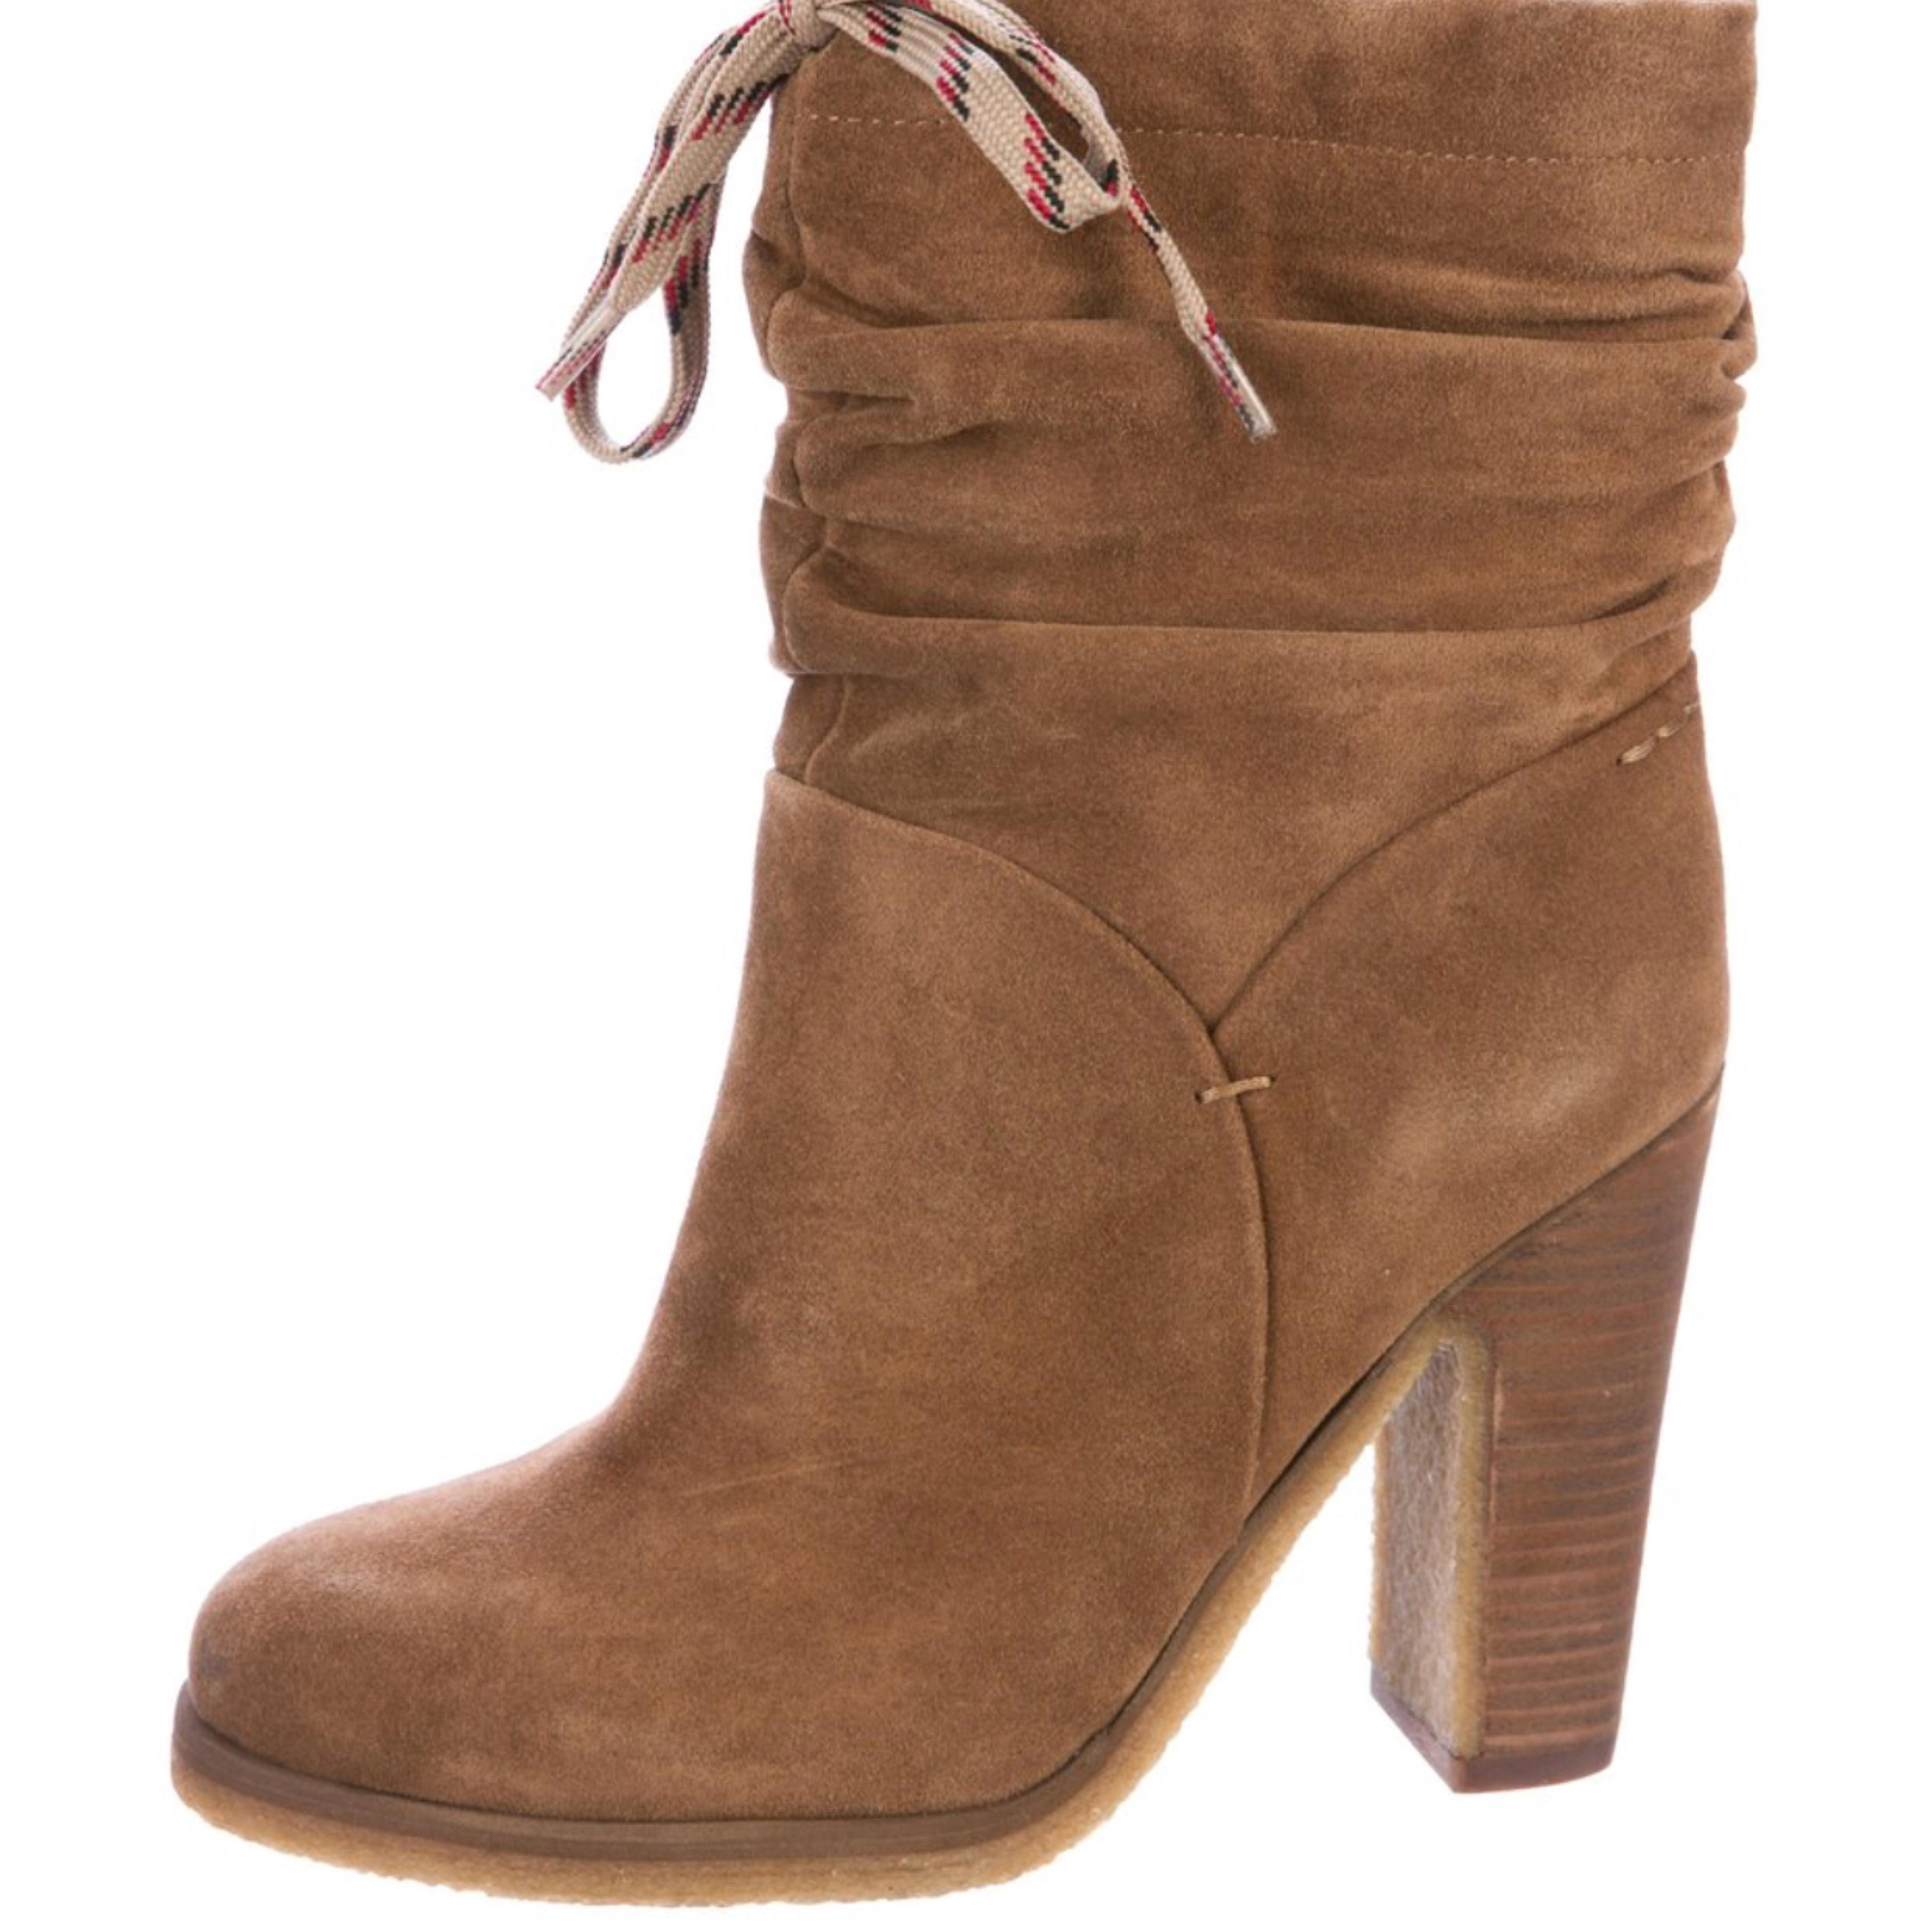 d0177fa9960 See by Chloé Camel Camel Camel Slouchy Ankle Boots Booties Size US 6  Regular (M